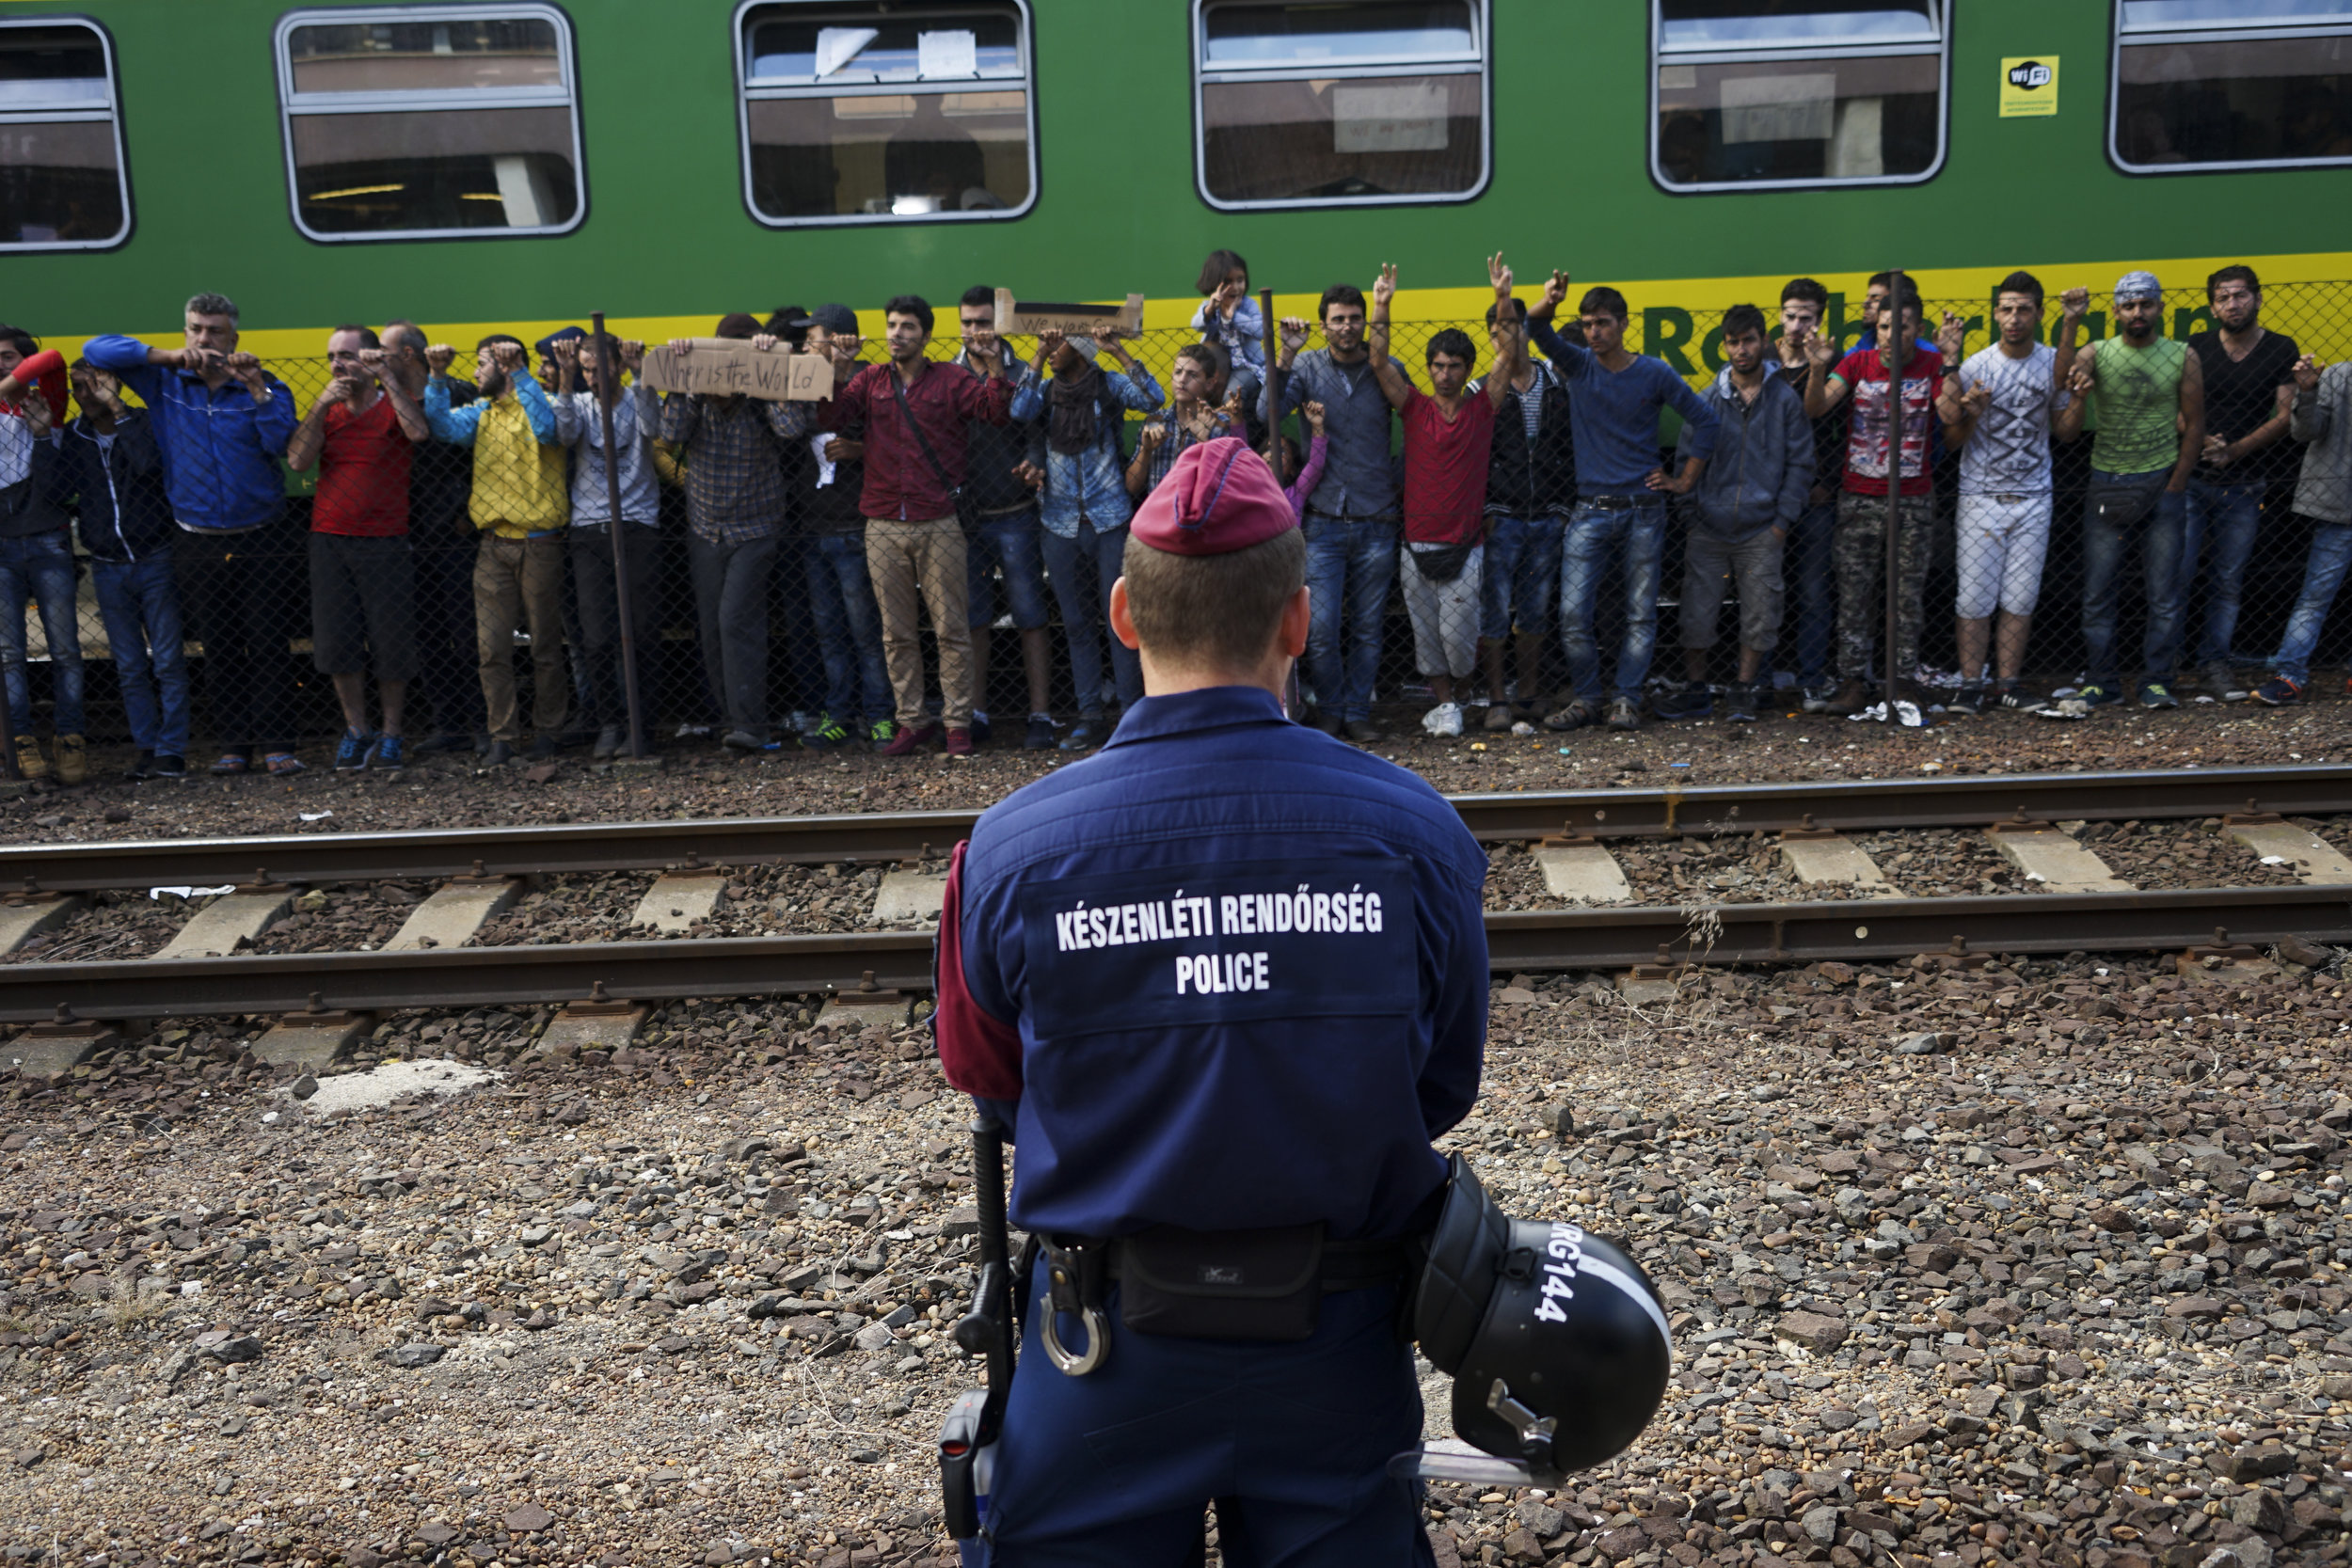 Syrian_refugees_strike_at_the_platform_of_Budapest_Keleti_railway_station._Refugee_crisis._Budapest,_Hungary,_Central_Europe,_4_September_2015._(3).jpg